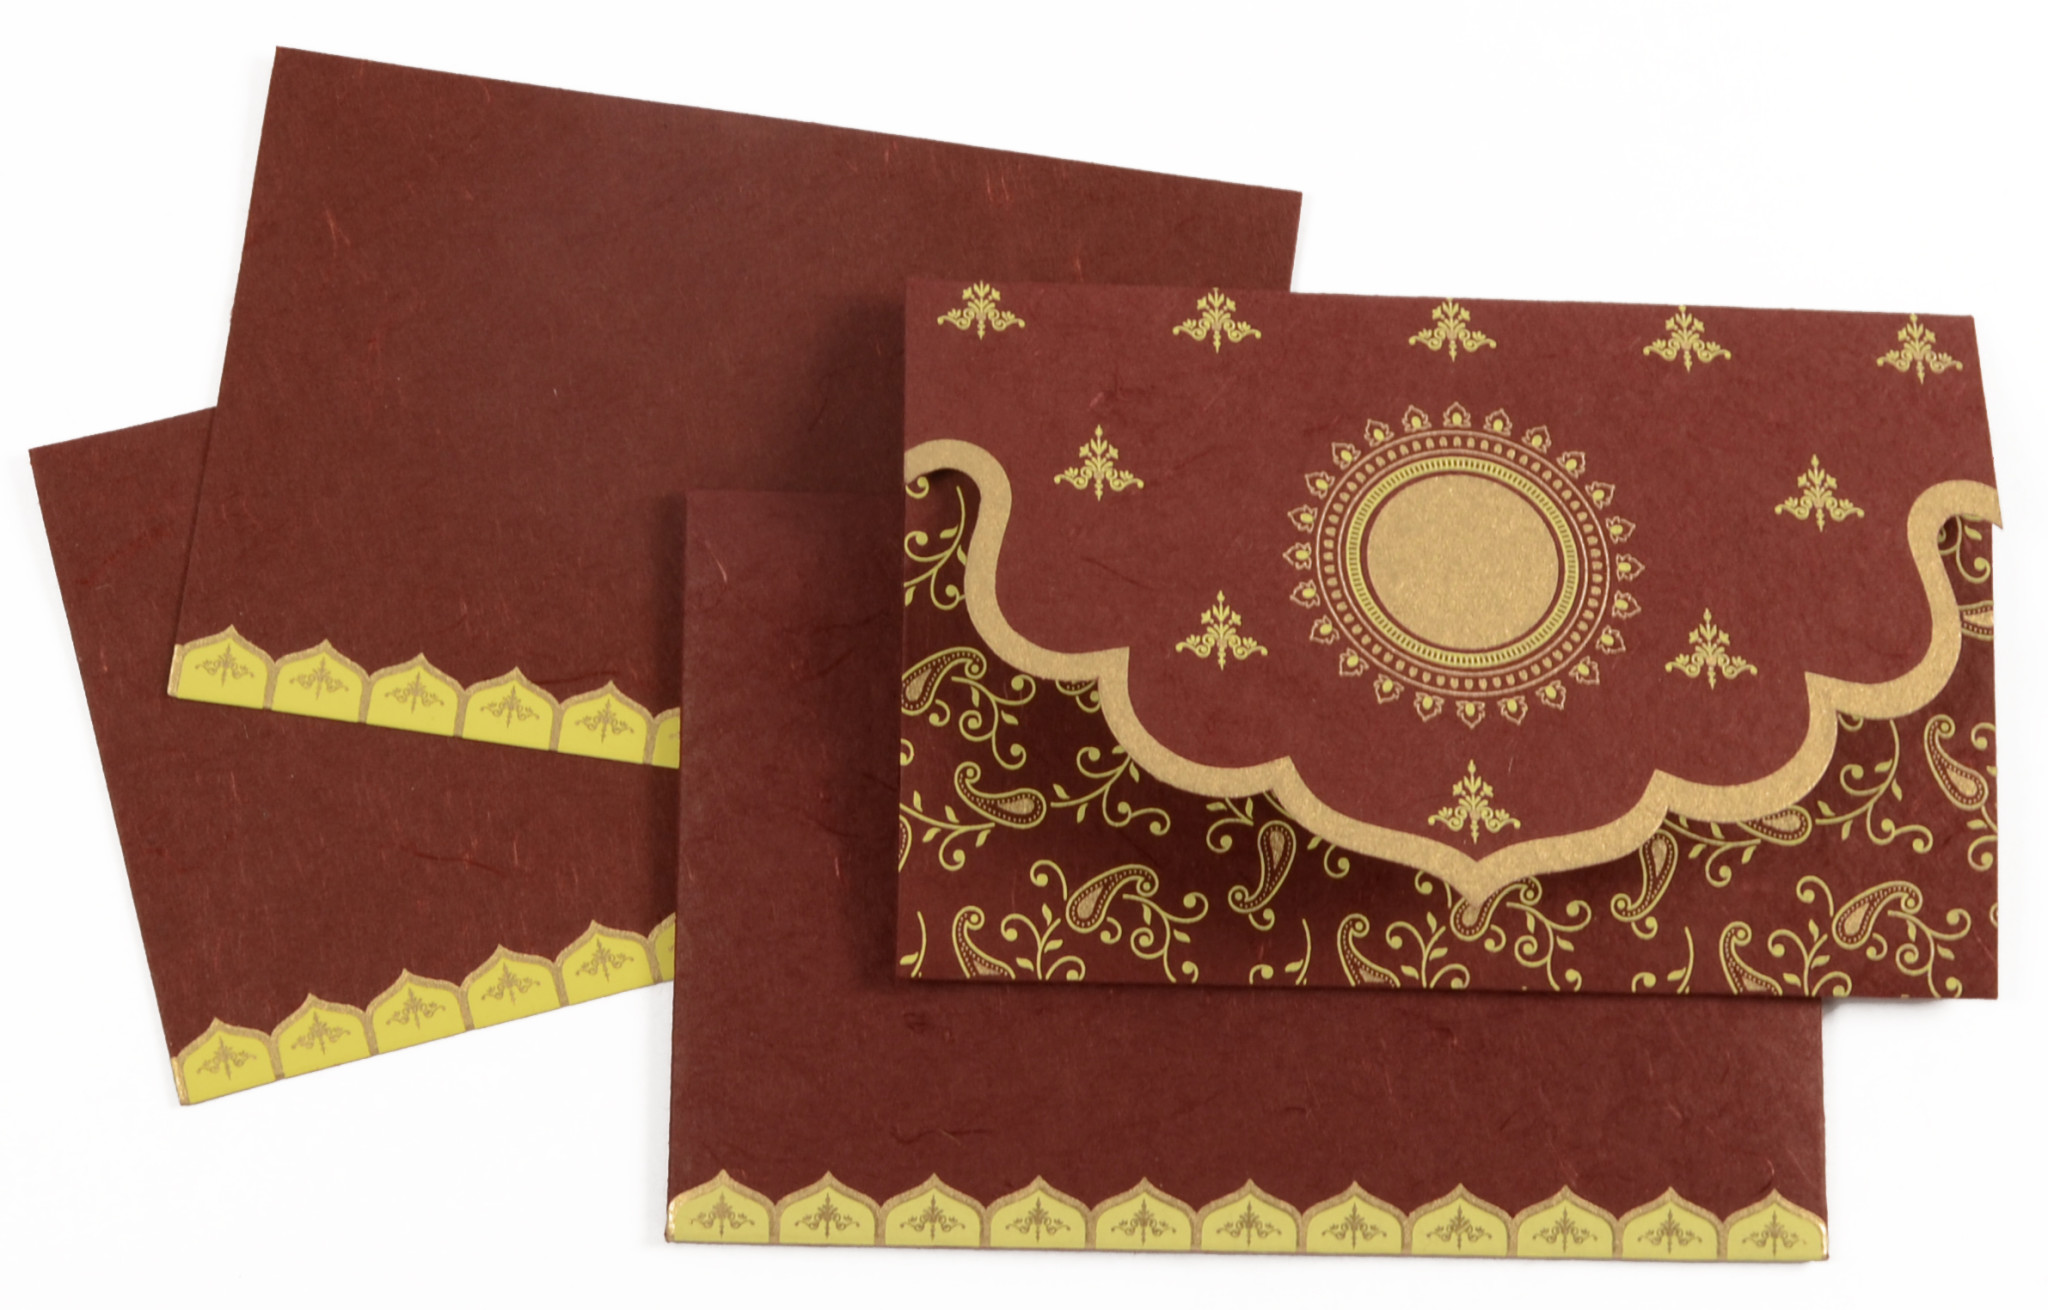 pakistani wedding invitation card 2